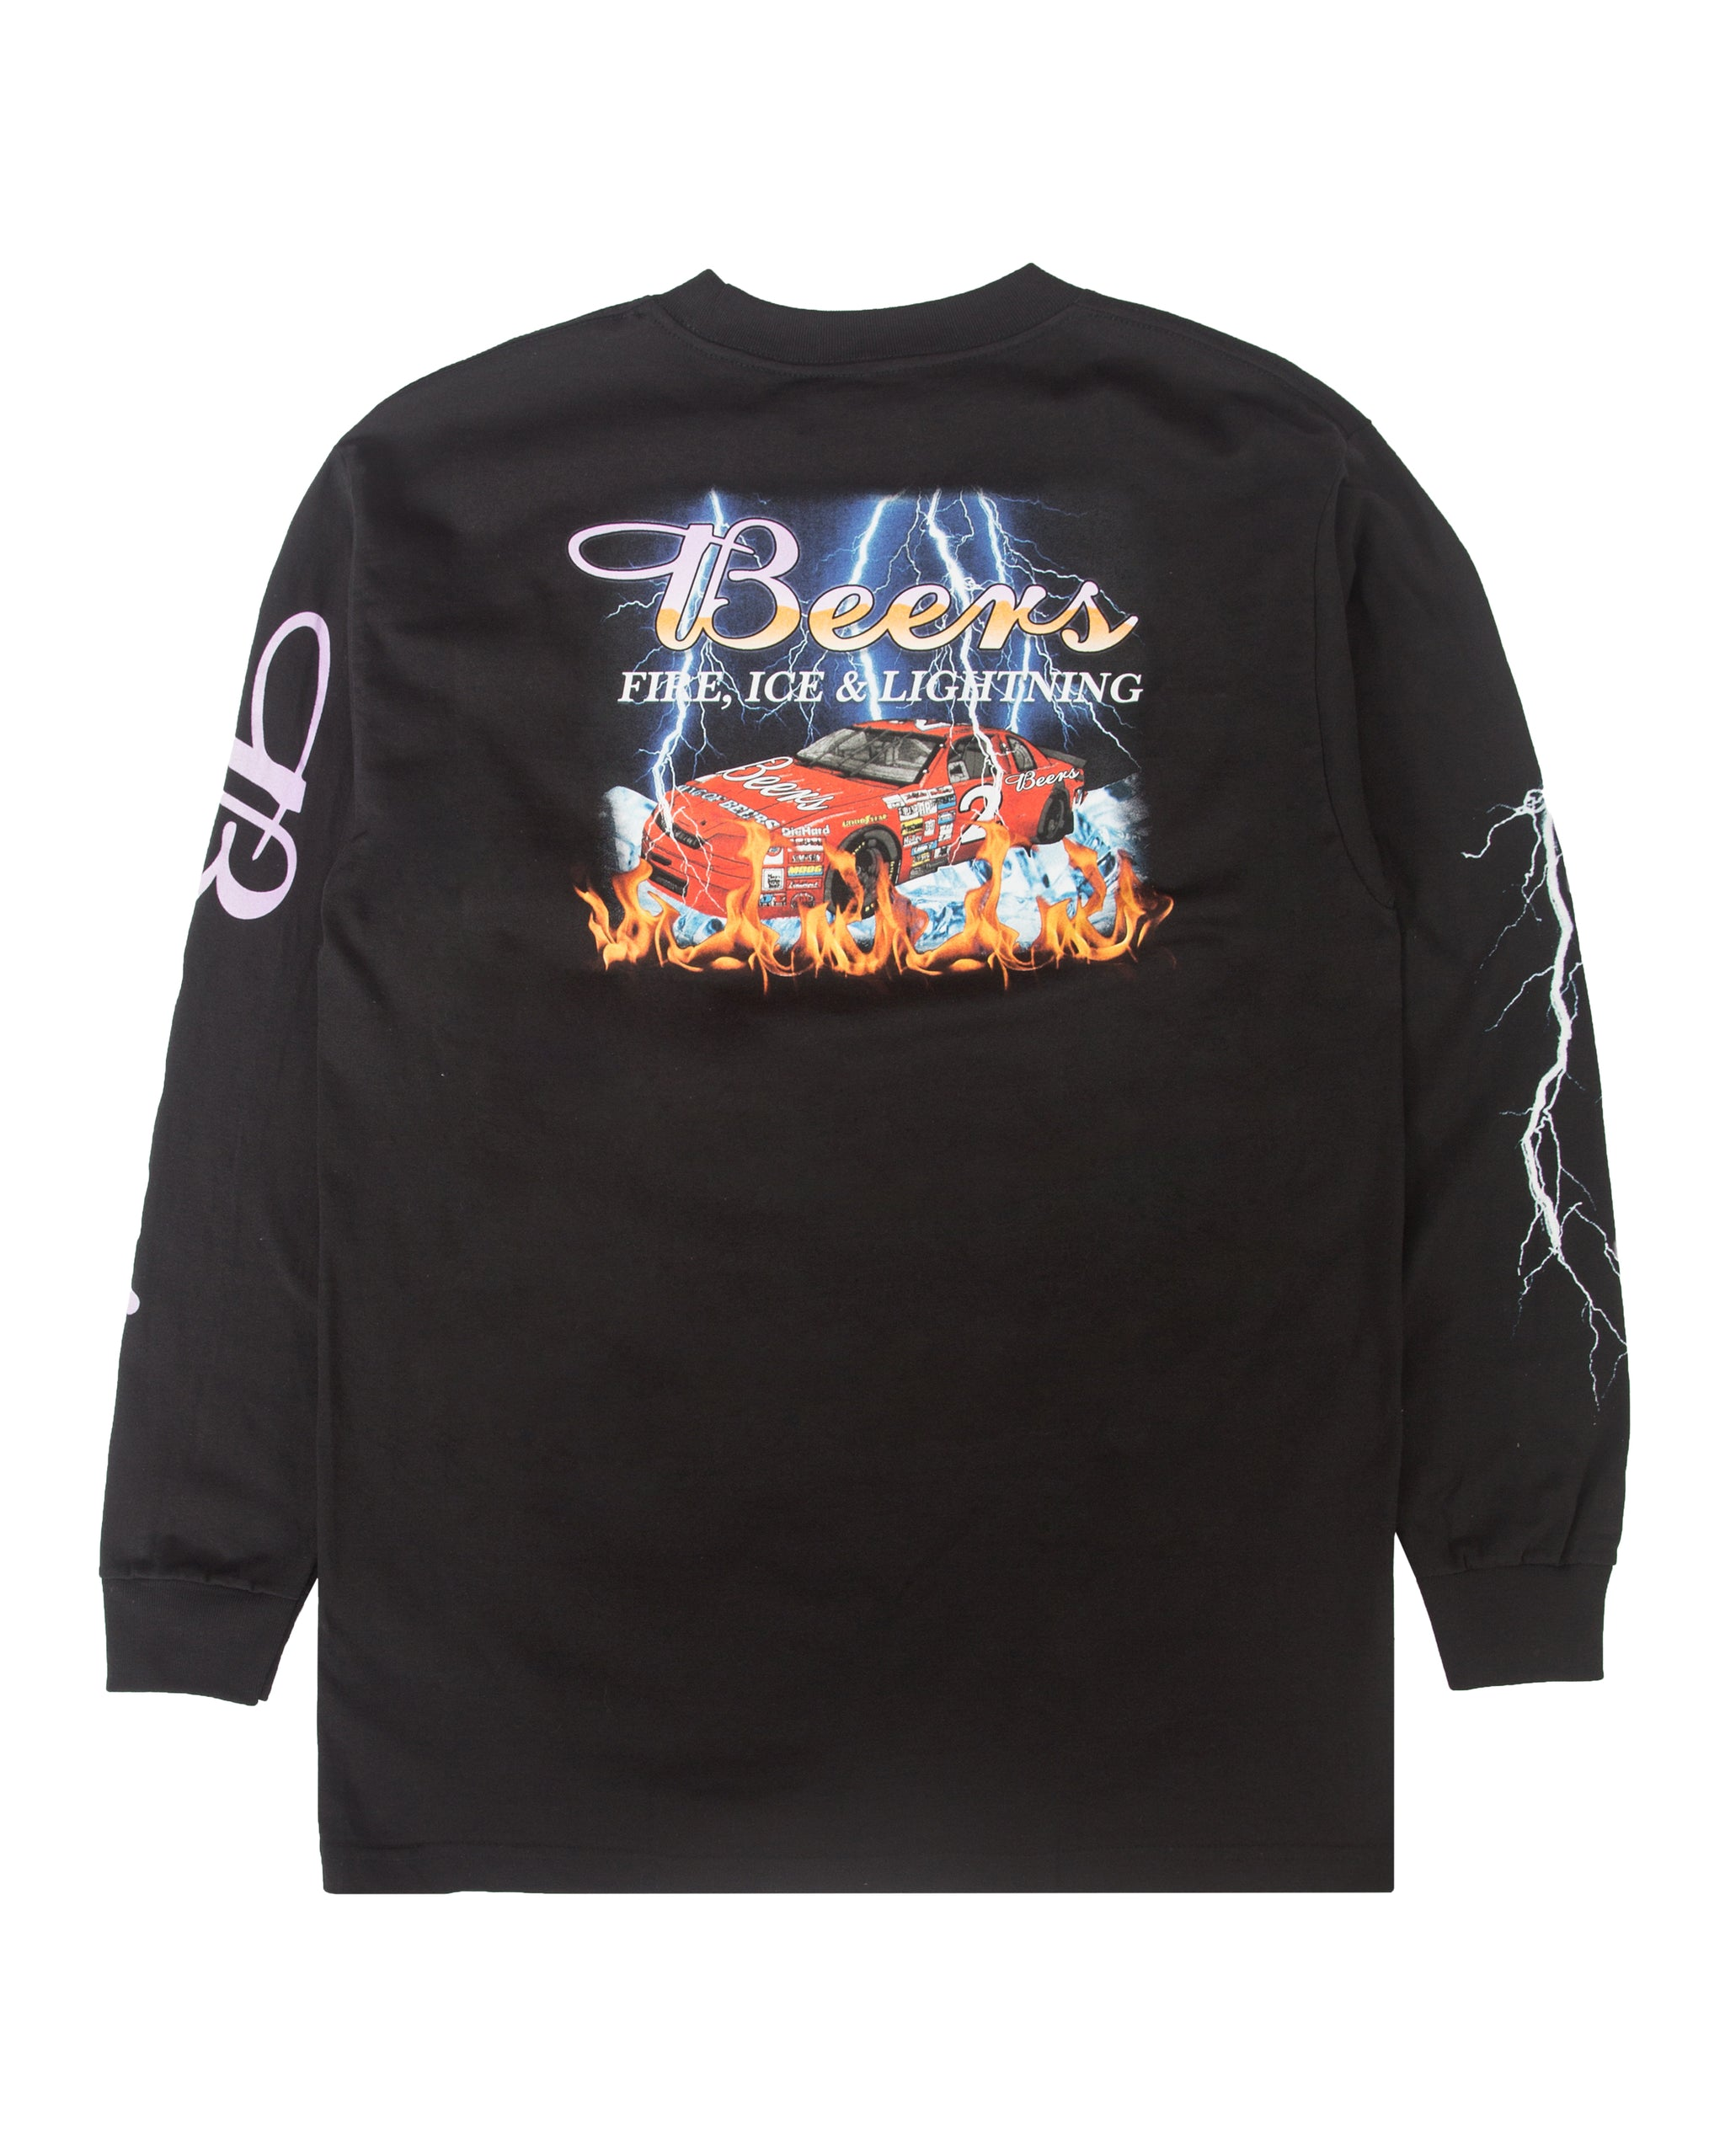 Racing Team Longsleeve Tee, Black